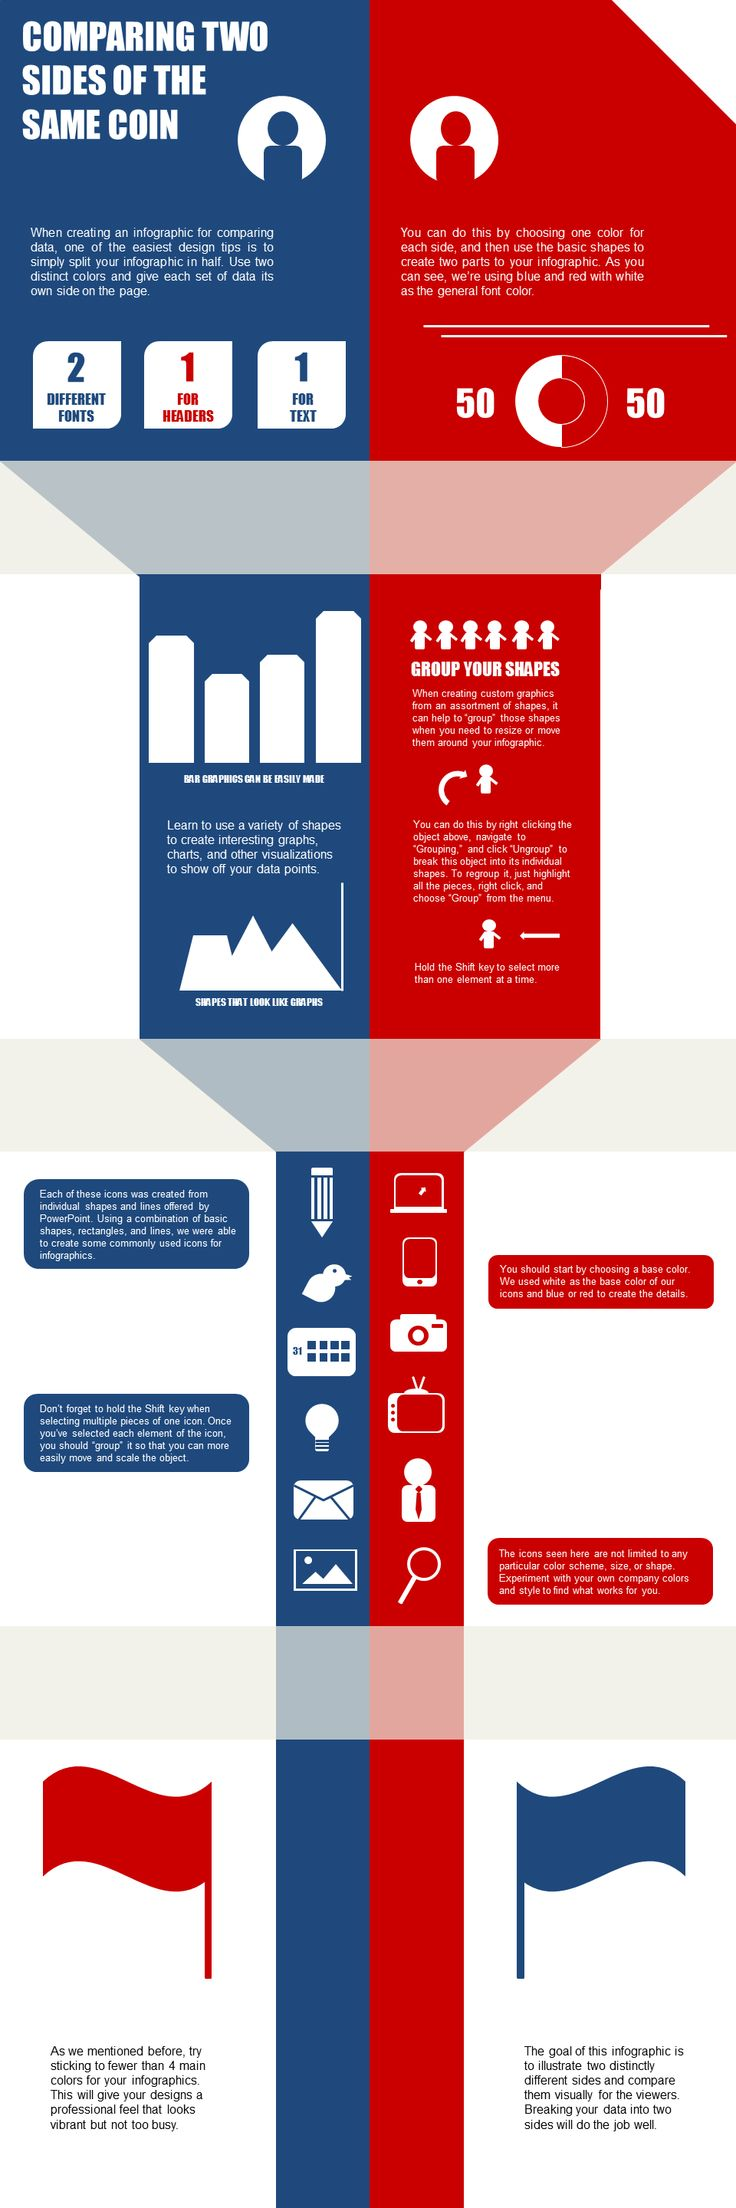 How to Create a Data Comparison Infographic in PowerPoint [HubSpot Infographic]